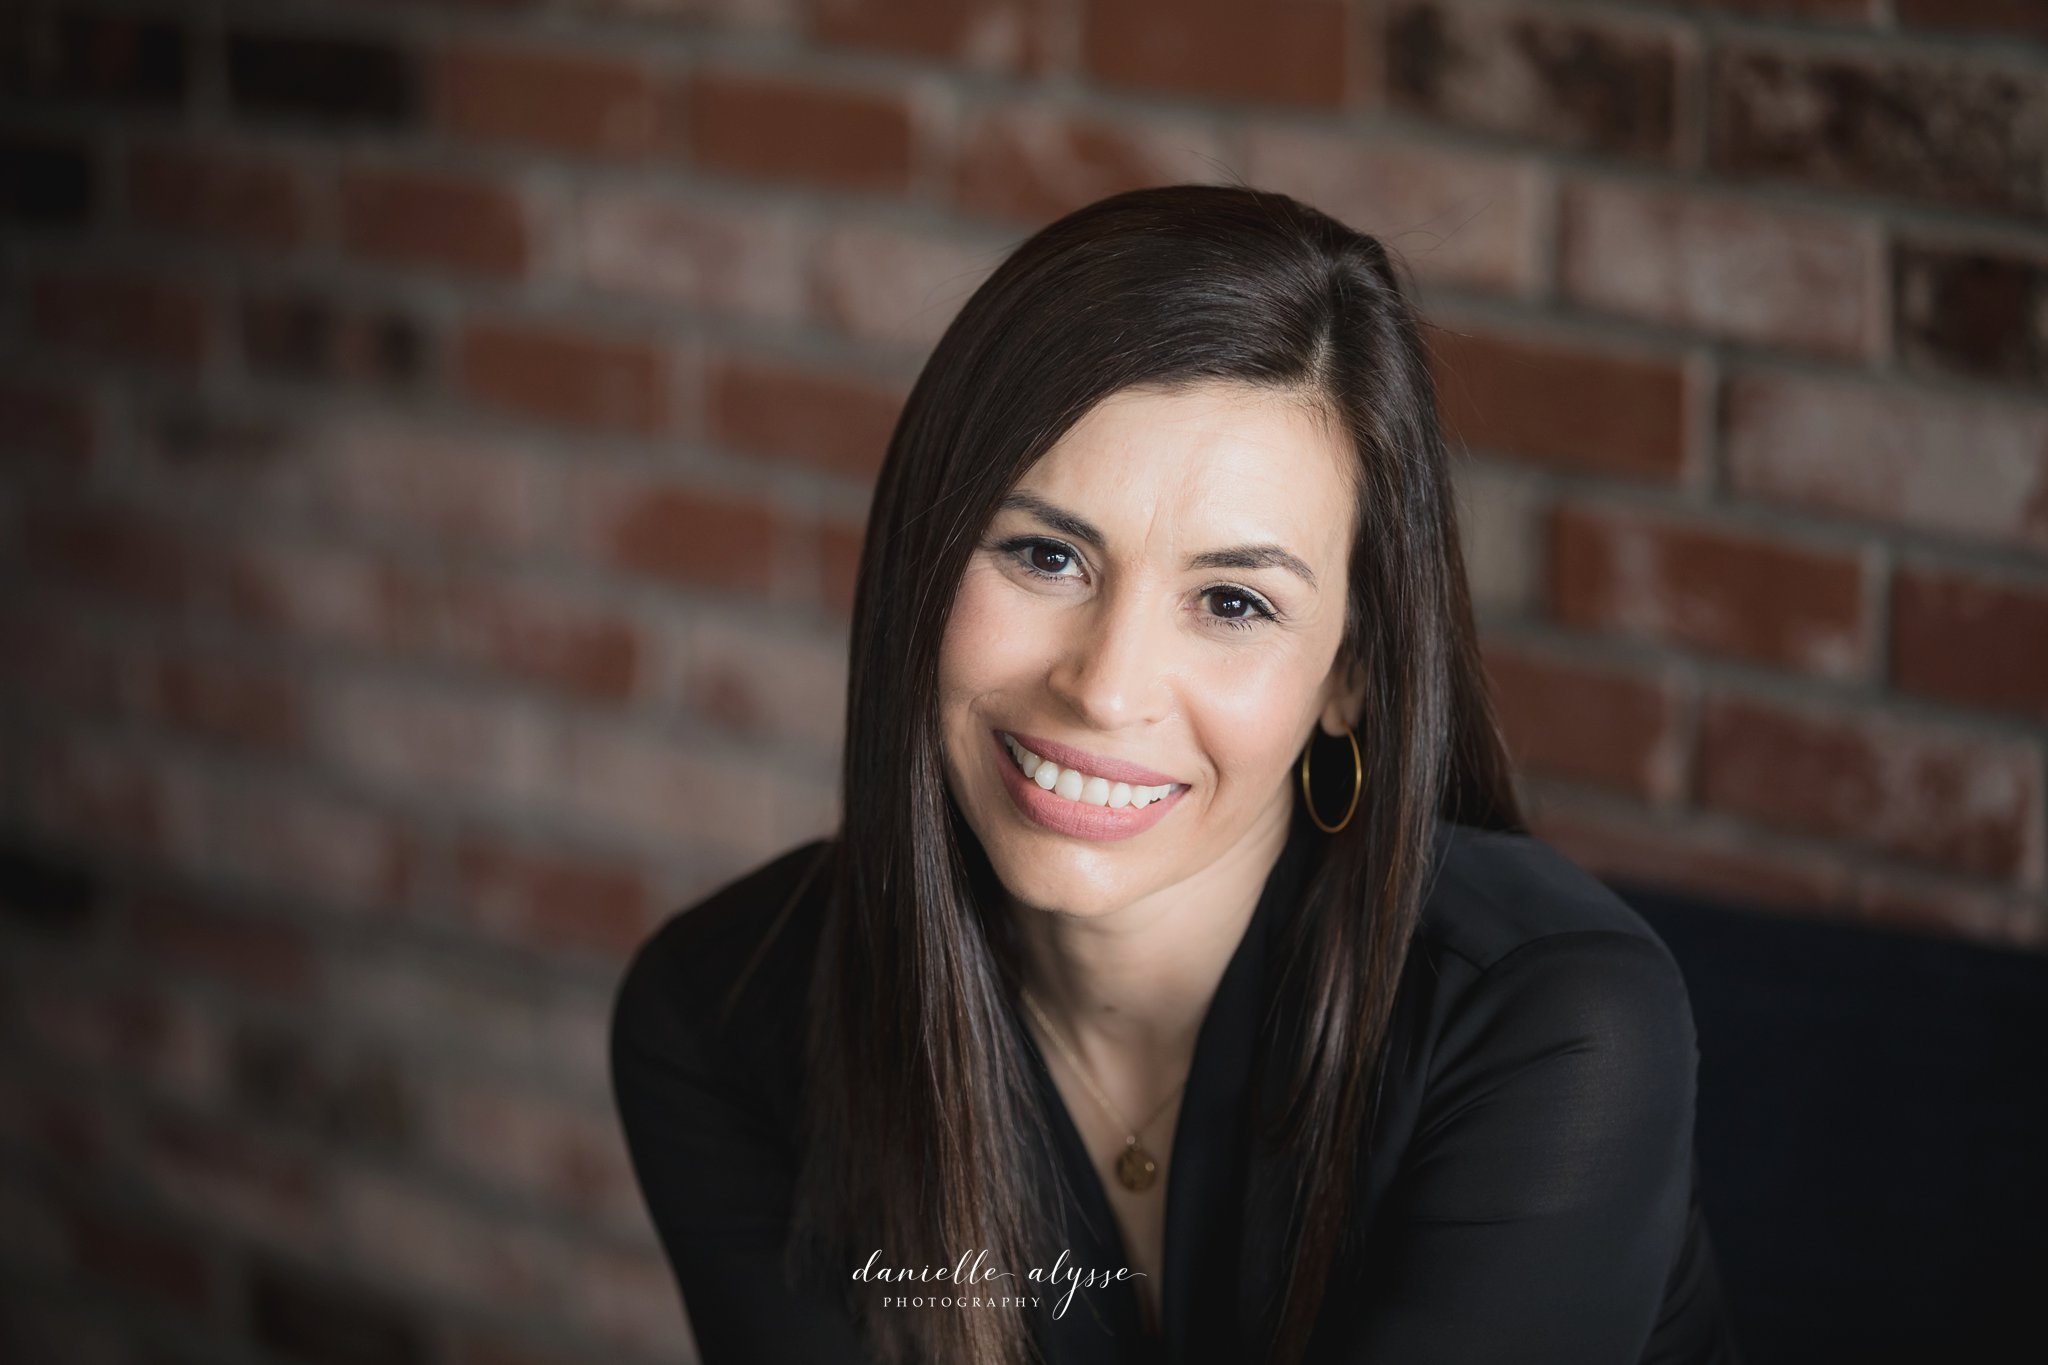 190322_lifestyle_headshot_natalie_elk_grove_danielle_alysse_photography_greener_21_WEB.jpg